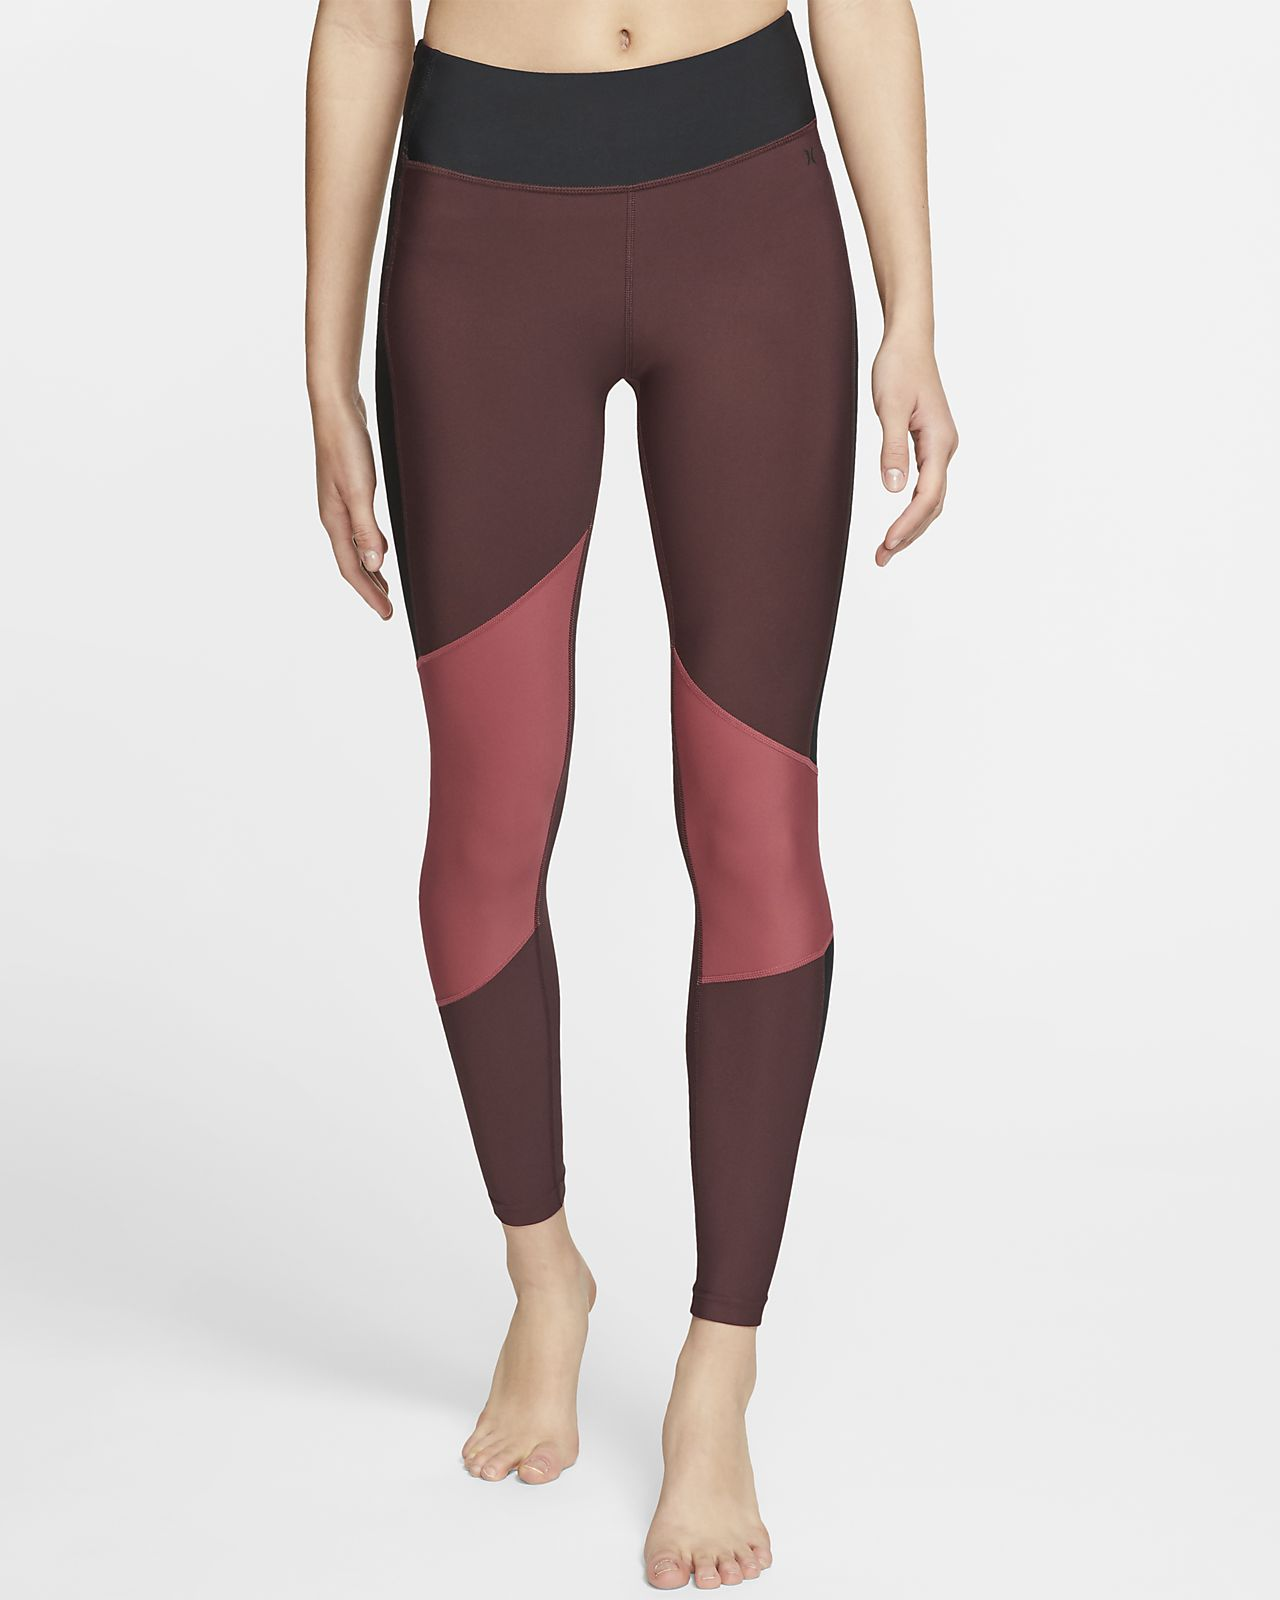 Hurley Quick Dry Street Ready Women's Surf Leggings